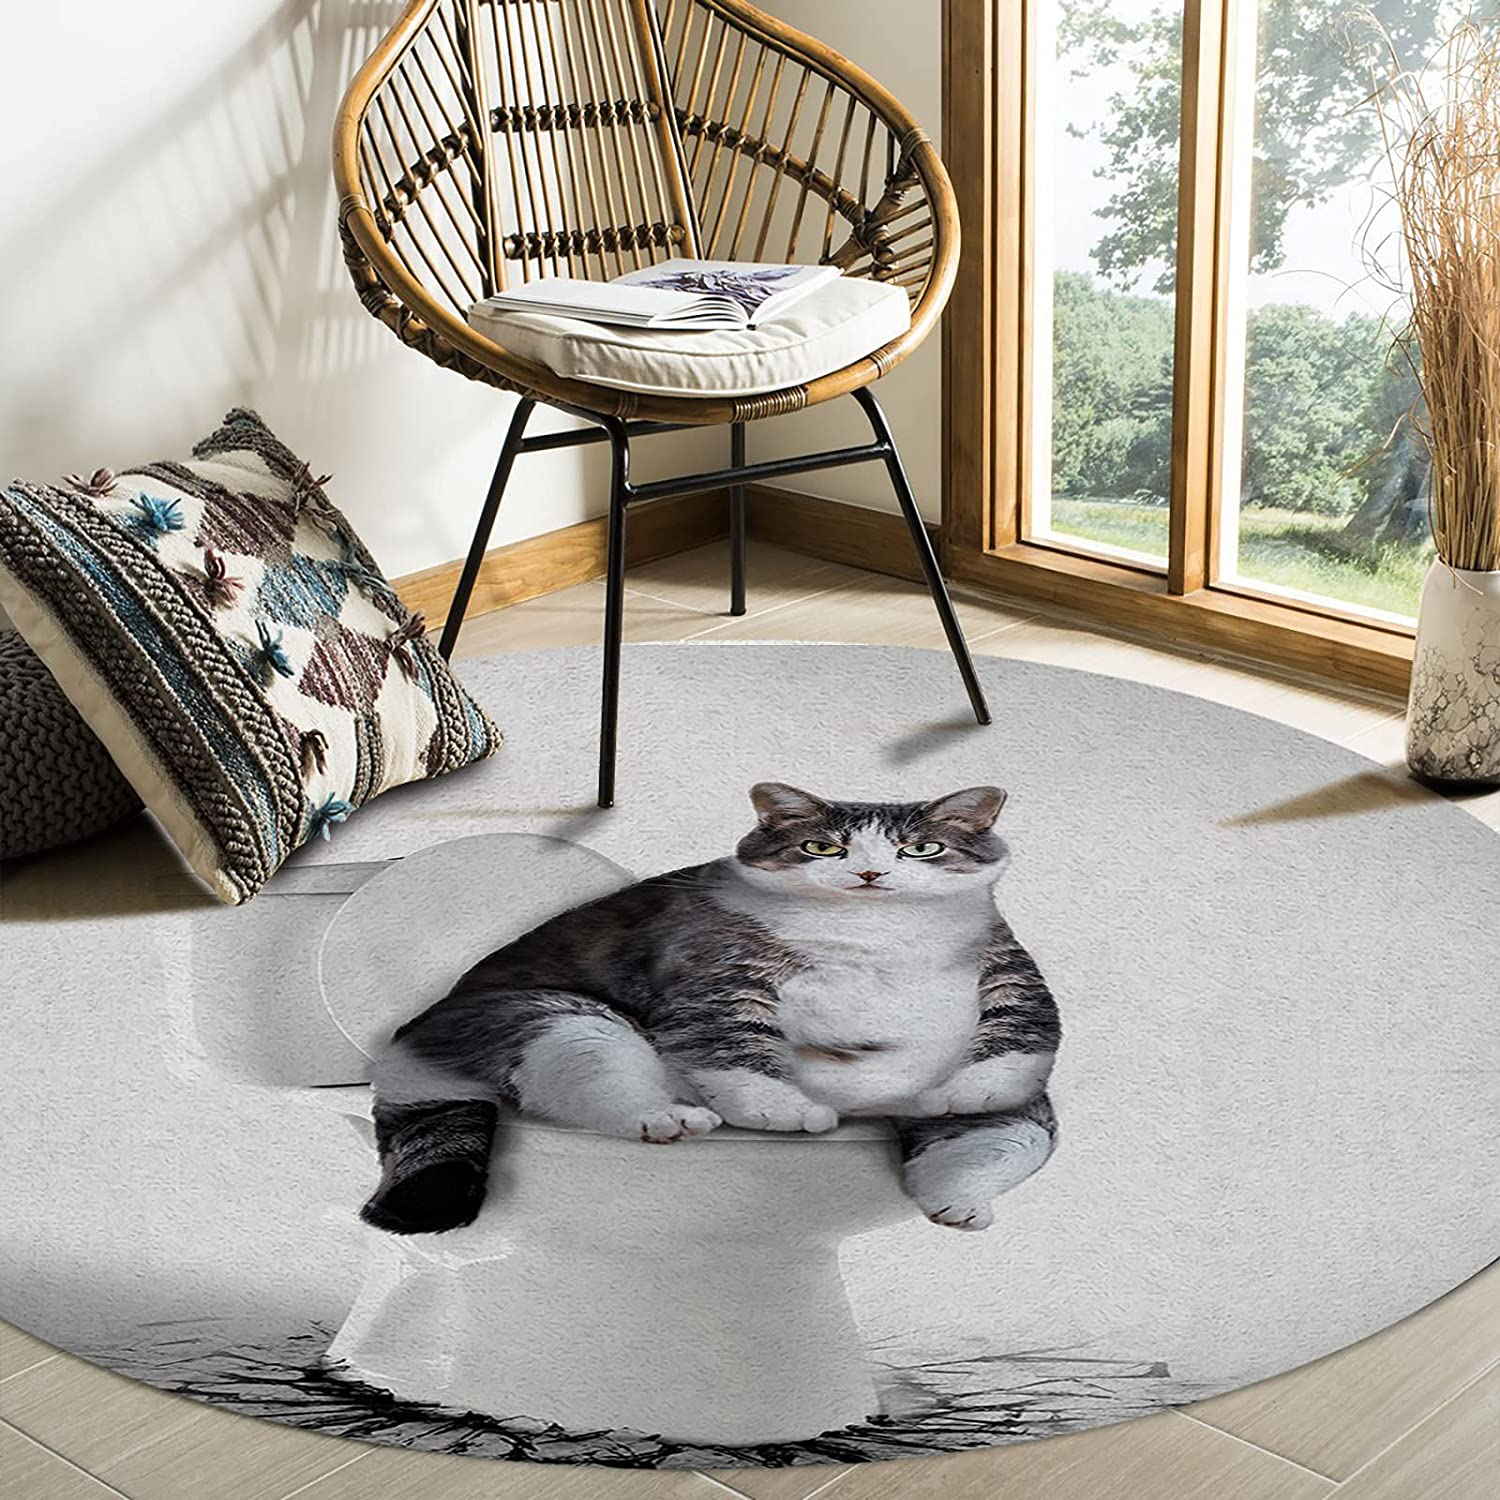 MuswannaA Round Area Rug- 6ft Diameter Cute Cat Sitting T The Max Memphis Mall 84% OFF on